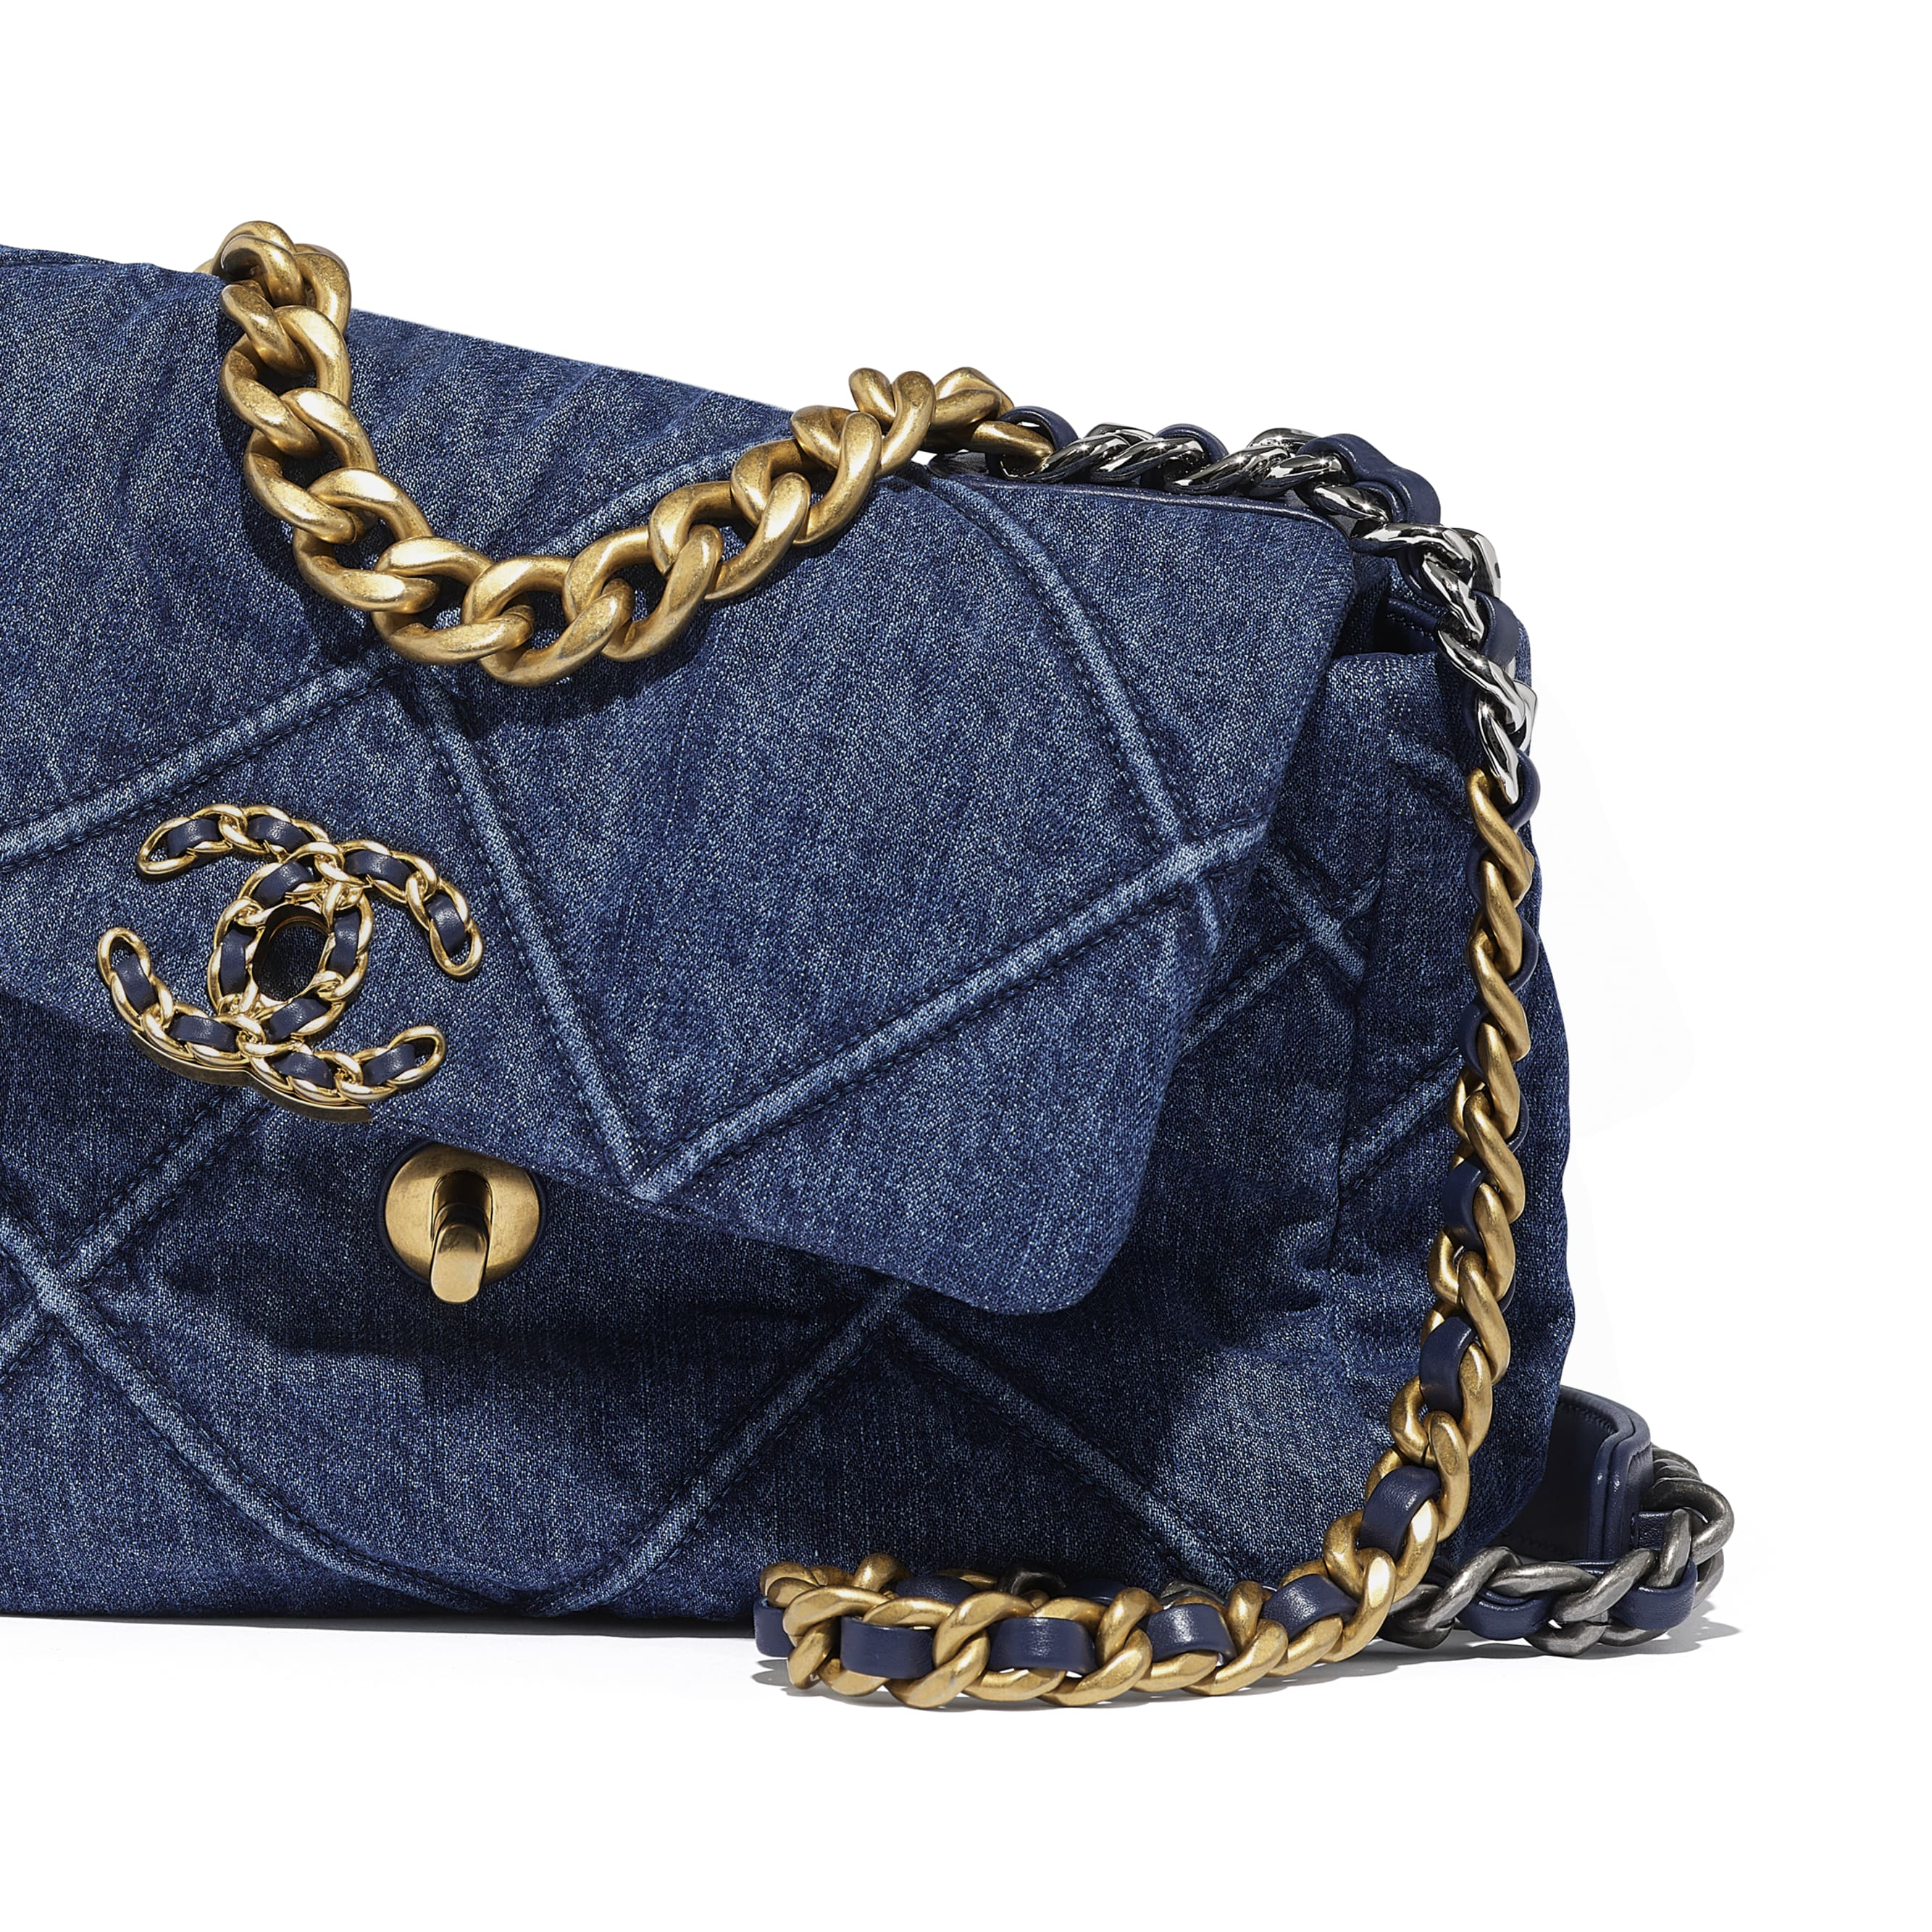 CHANEL 19 Flap Bag - Blue - Denim, Gold-Tone, Silver-Tone & Ruthenium-Finish Metal - CHANEL - Extra view - see standard sized version